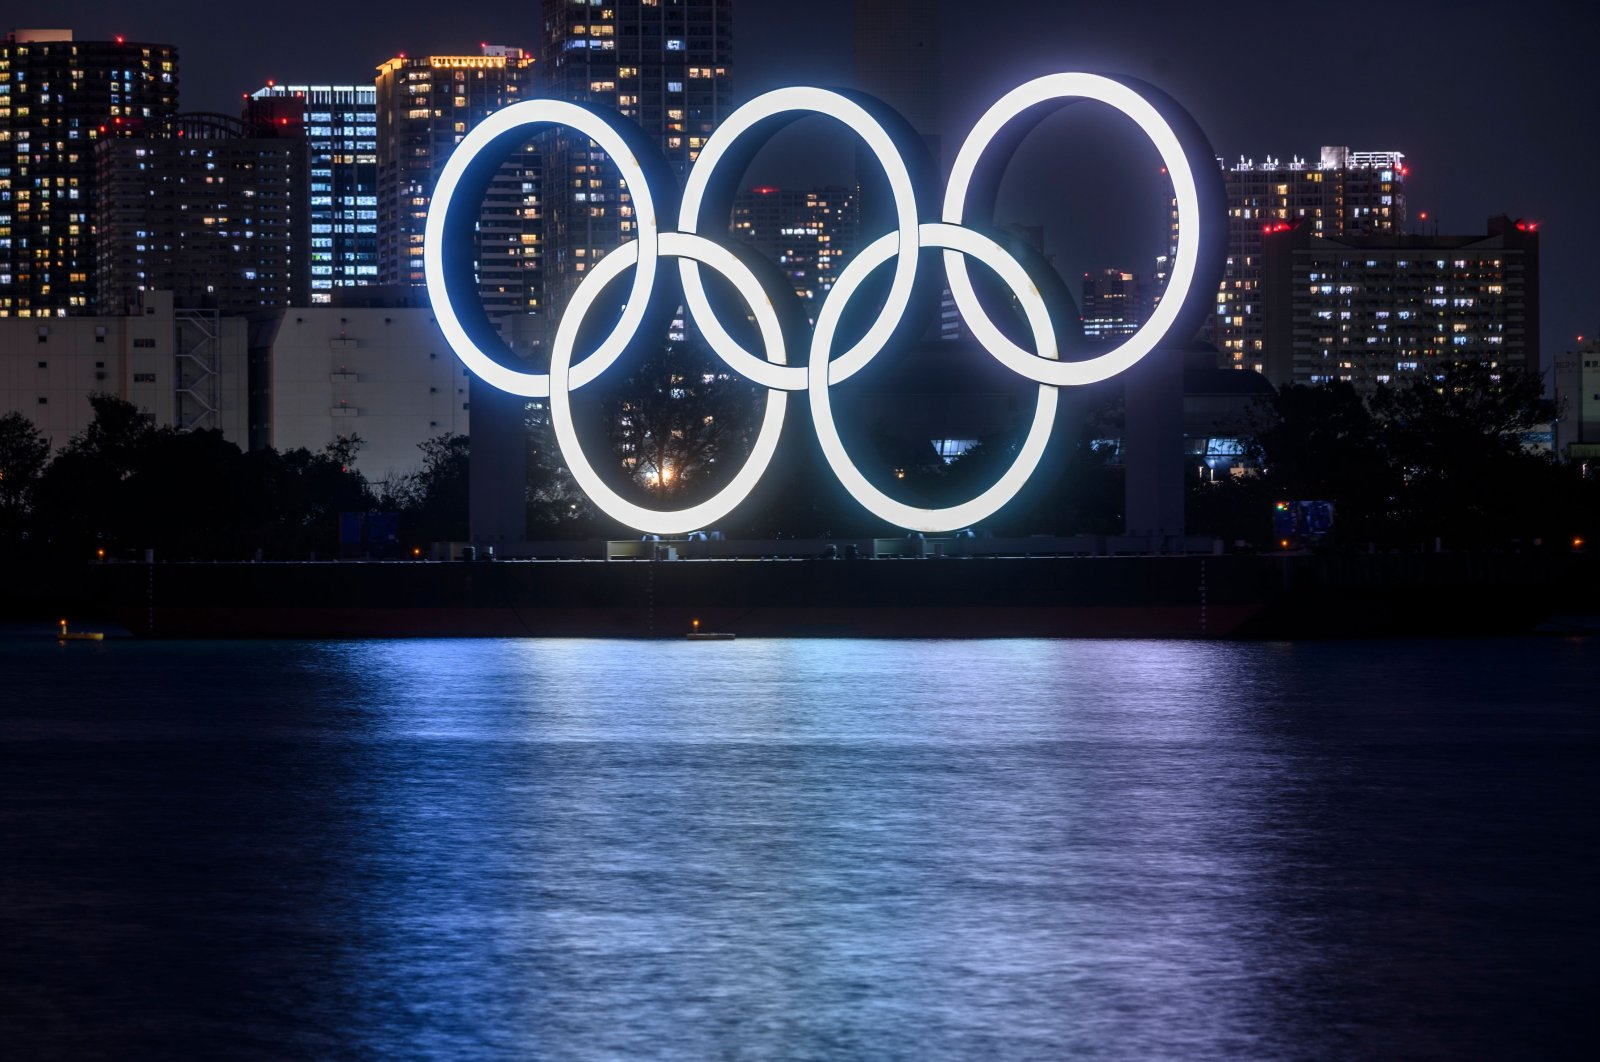 The giant Olympic rings illuminated on display at the waterfront area at Odaiba Marine Park in Tokyo, Japan, Dec. 1, 2020. (AFP Photo)